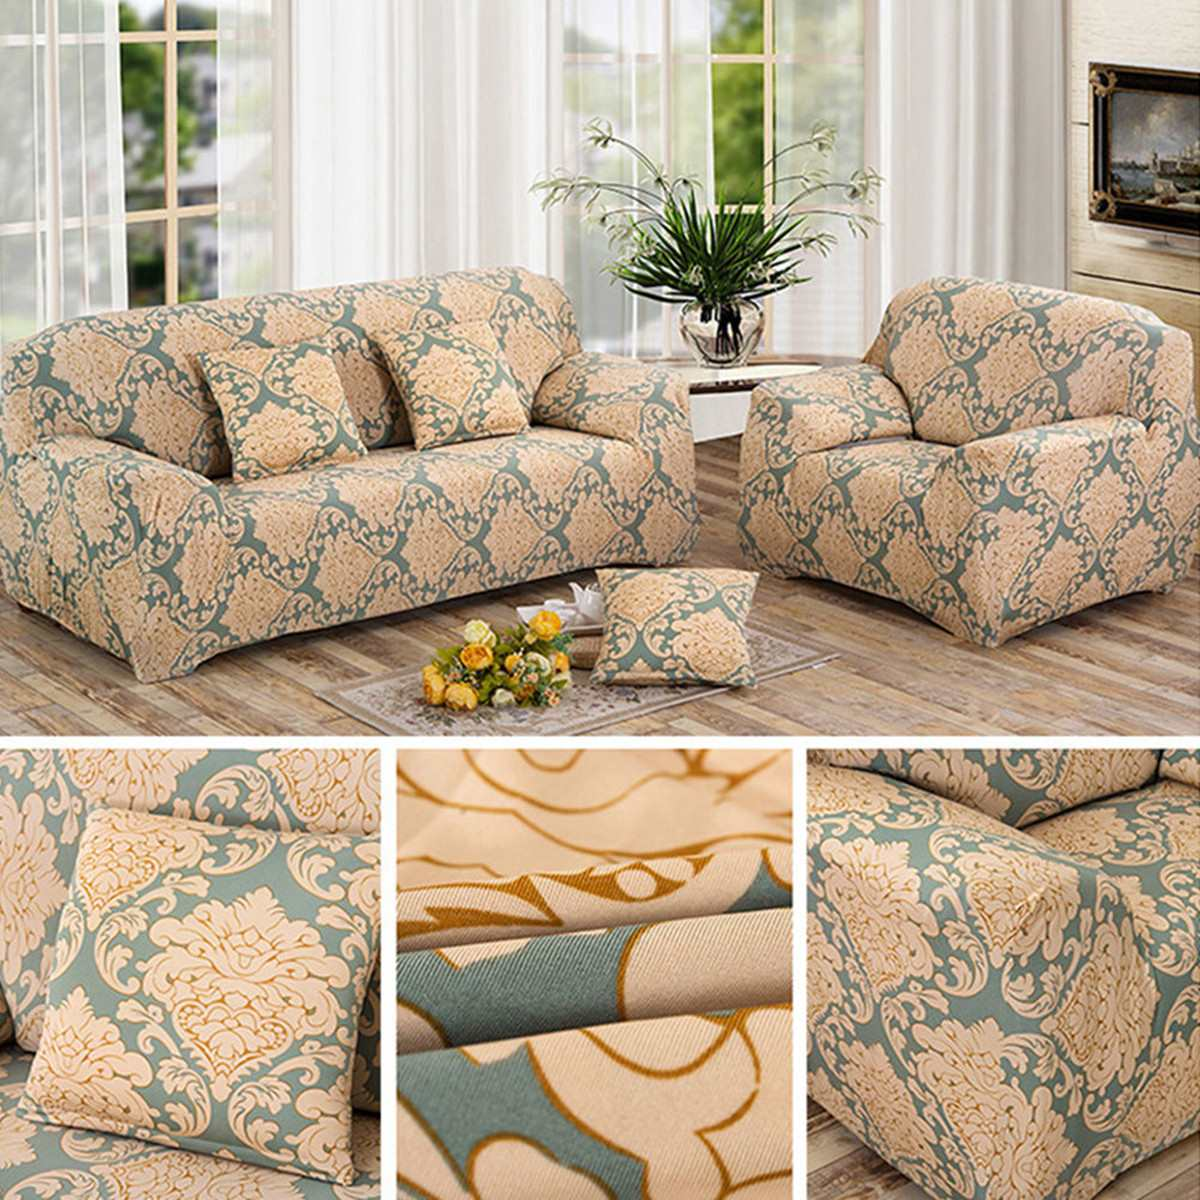 flower sofa covers dry cleaning at home bangalore compare prices on floral slipcover online shopping